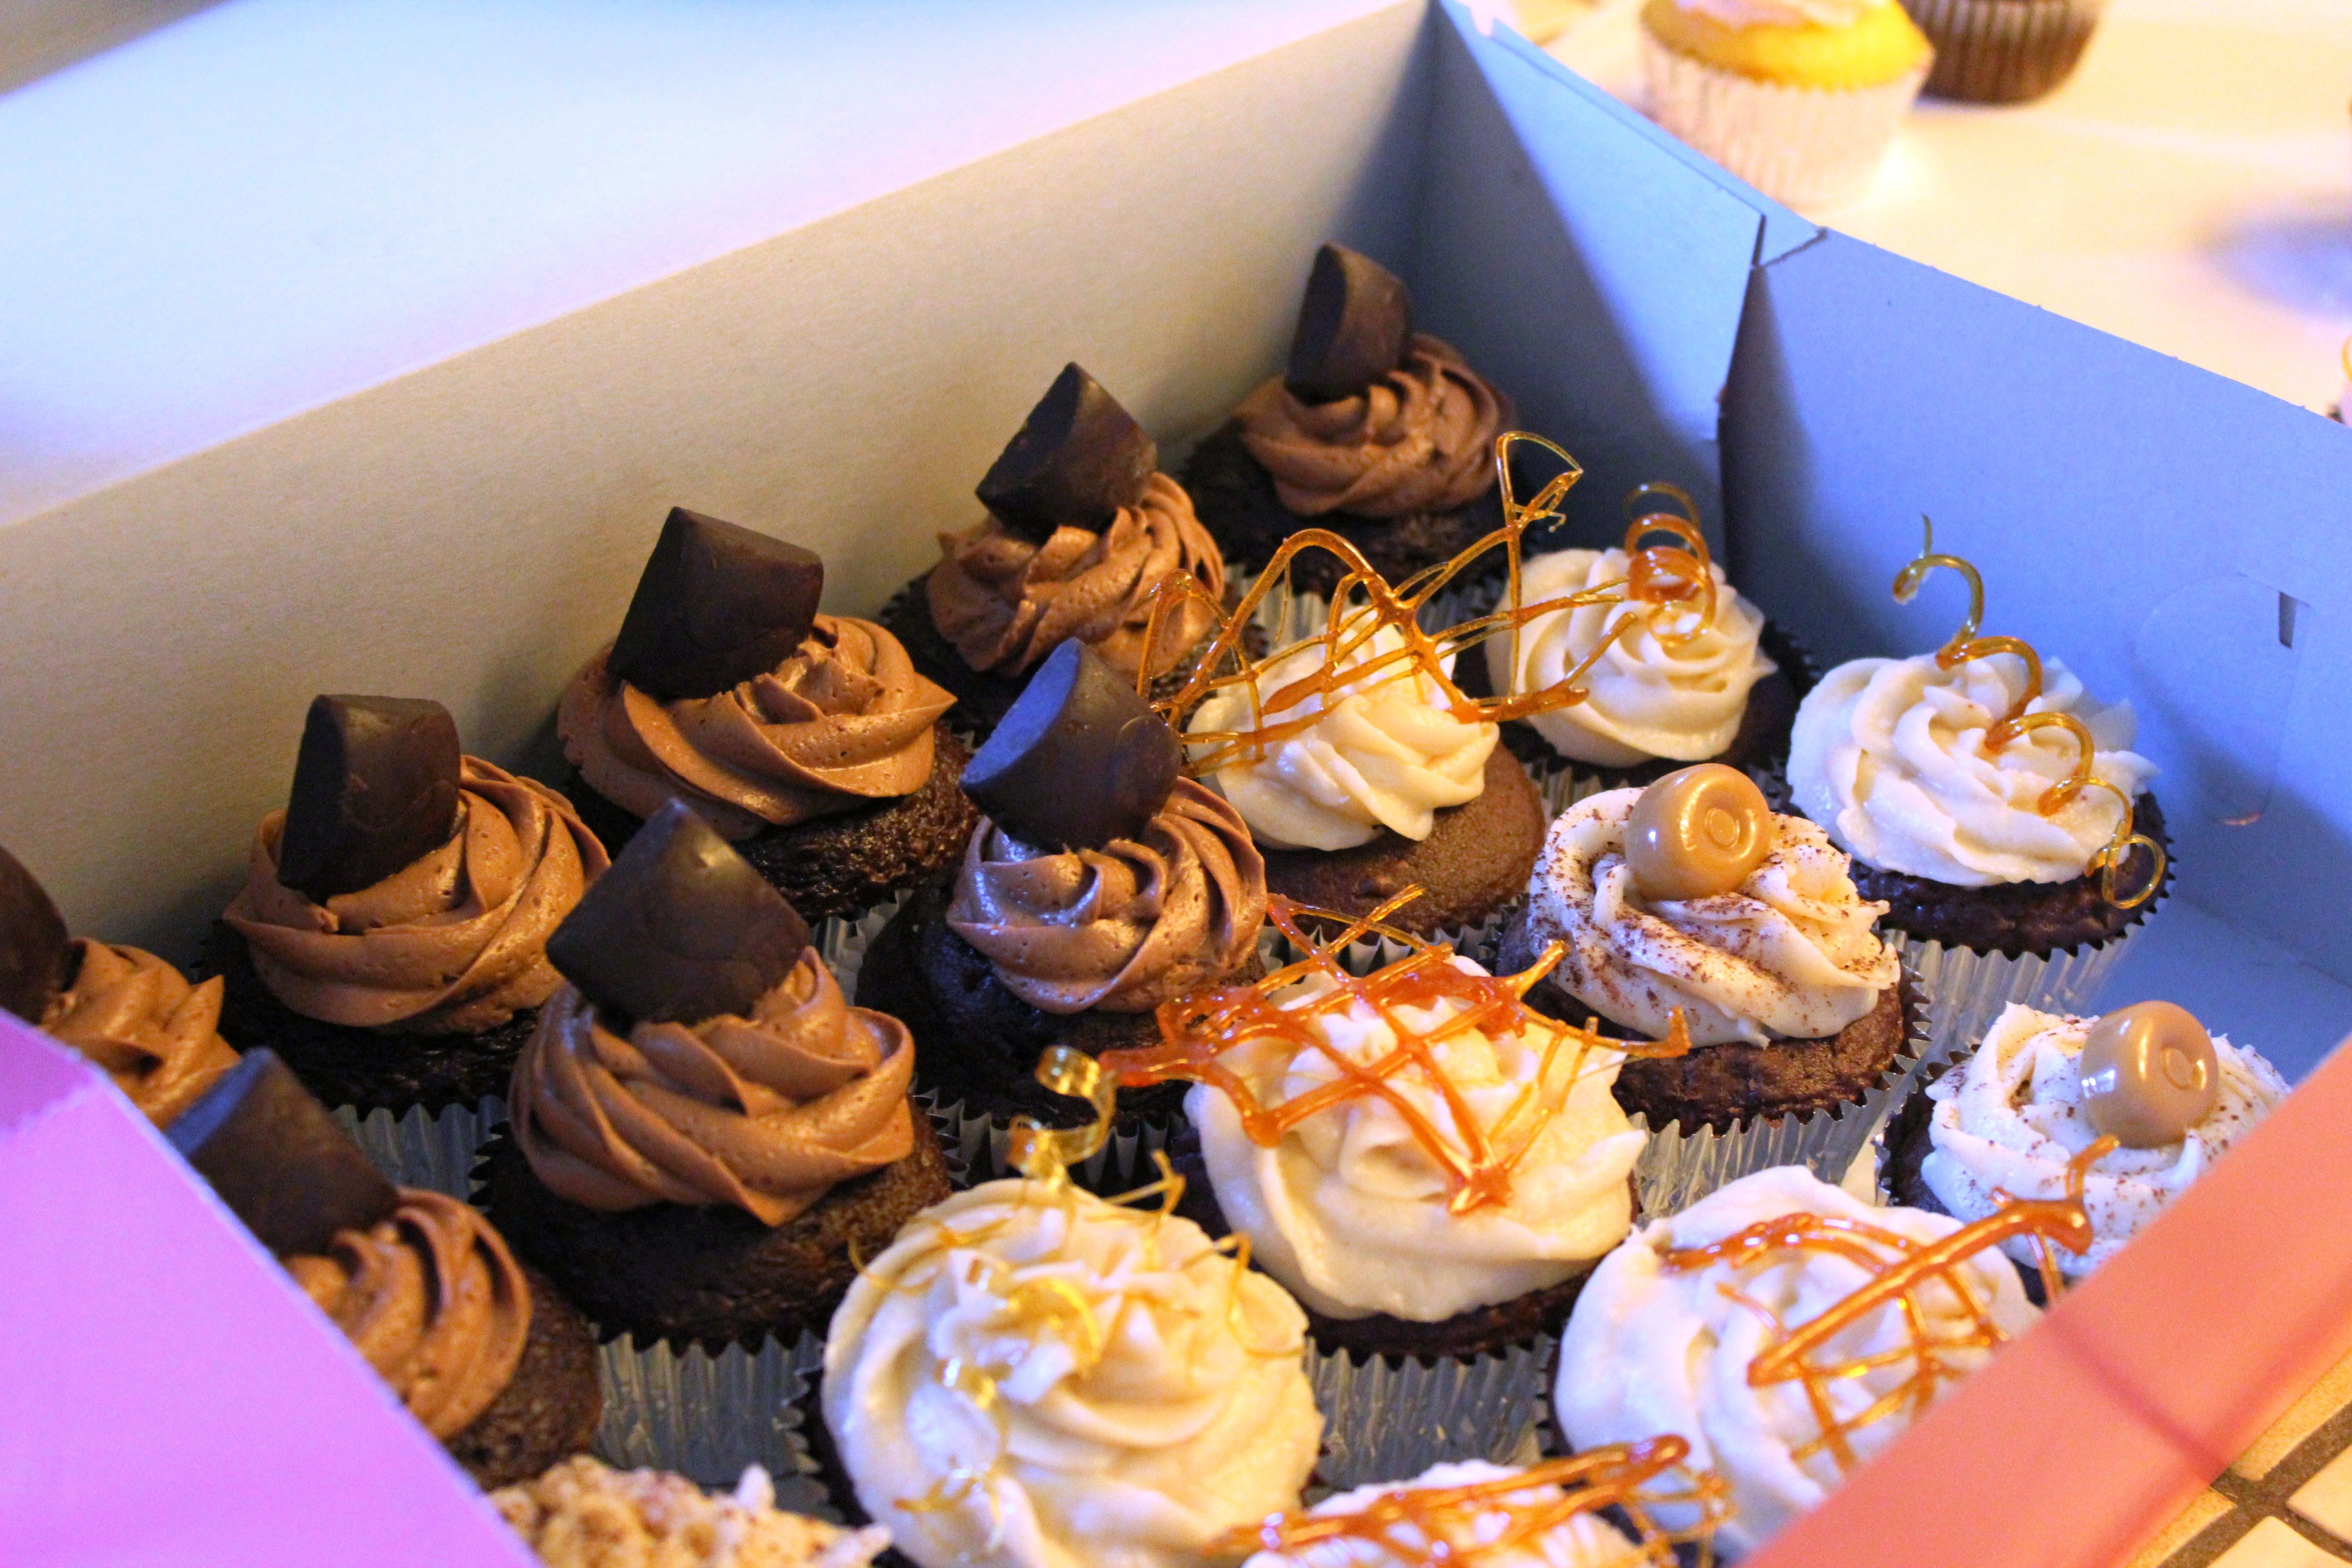 Order for chocolate whiskey cupcakes and caramel cupcakes!